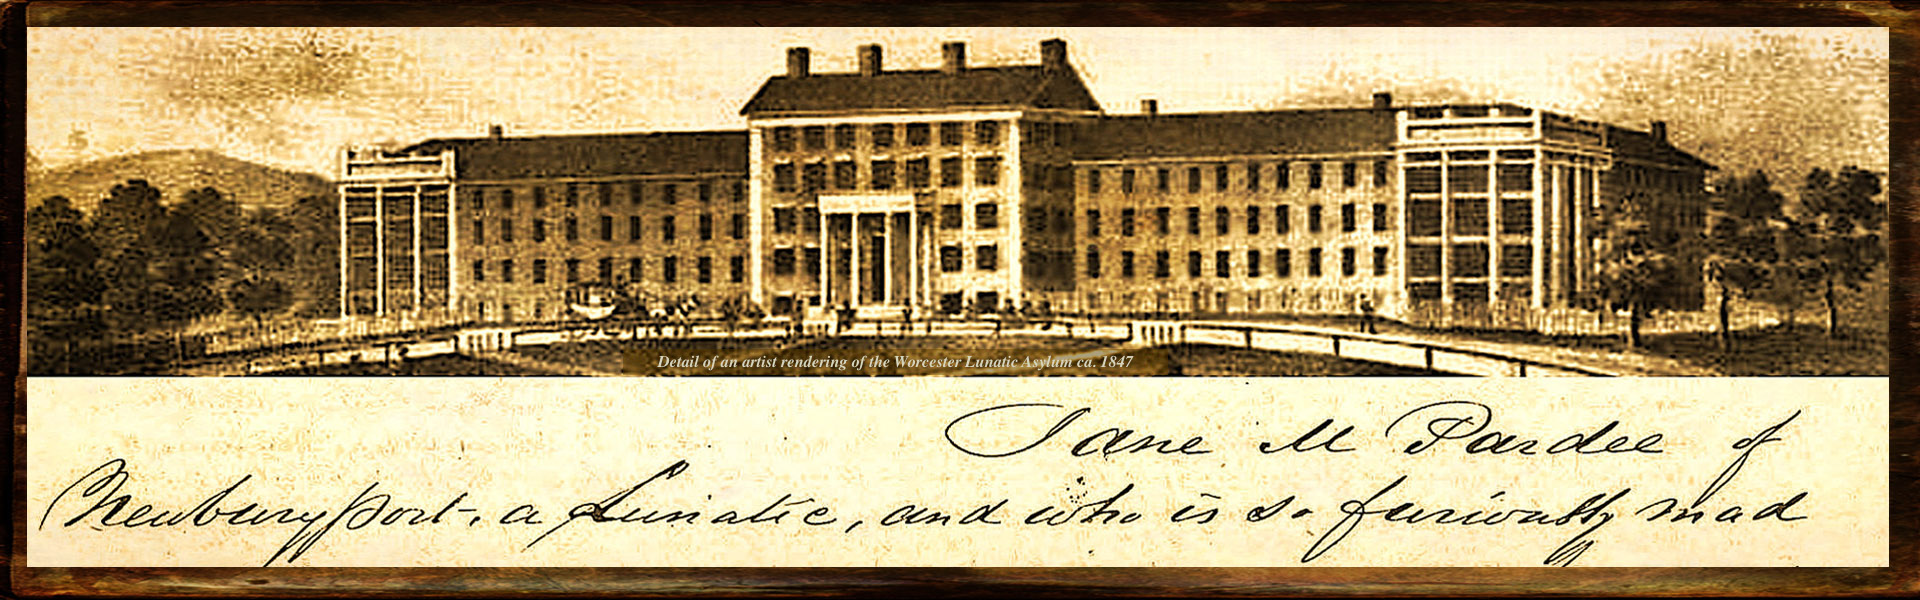 Detail of the Worcester Lunatic Asylum and the legal paper committing Jane M. Pardee